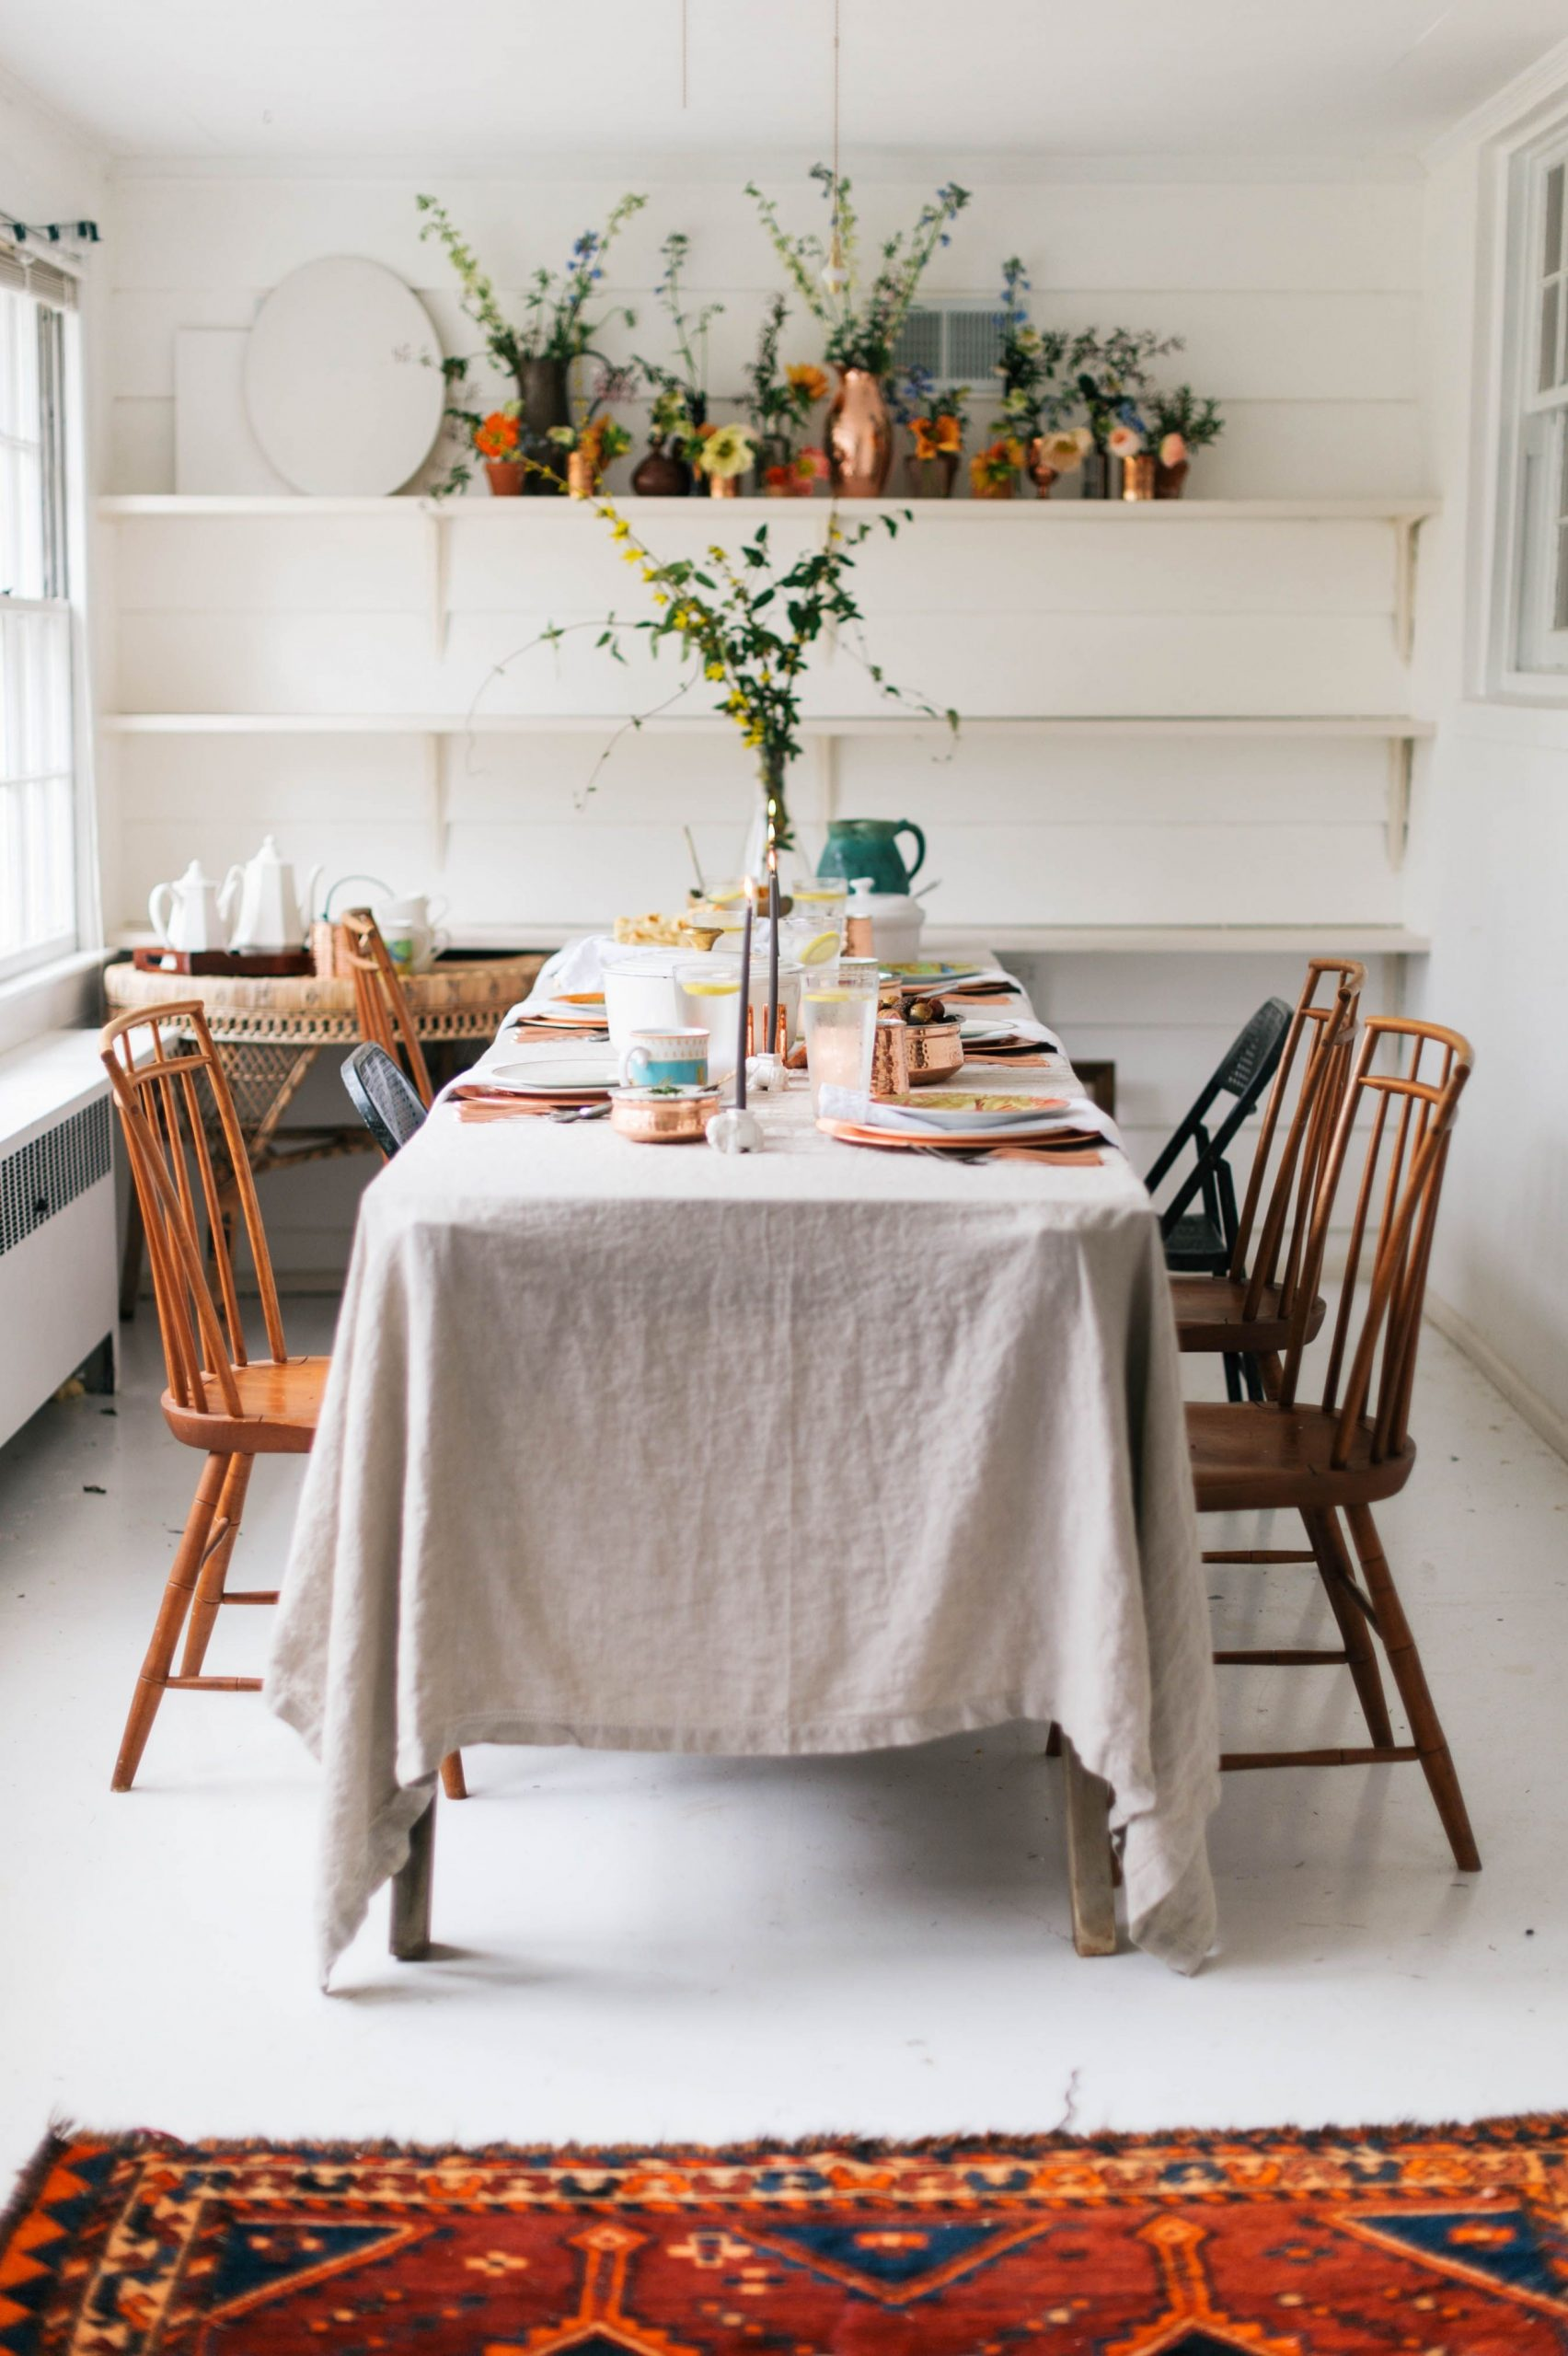 An India-Inspired Feast with Williams Sonoma - A Daily Something  - Dining Room Ideas Tablecloth